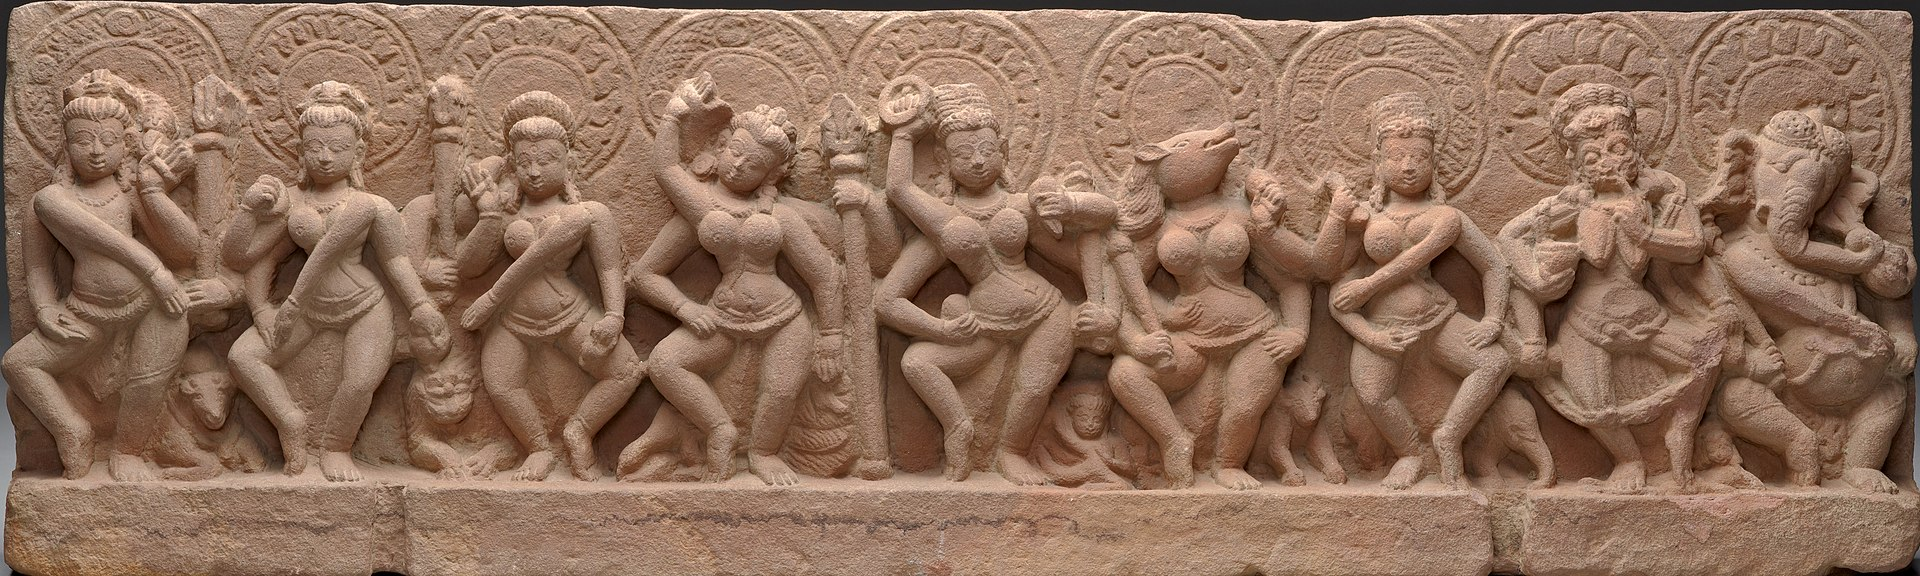 The Seven Mother Goddesses (Matrikas) Flanked by Shiva (left) and Ganesha (right).jpg